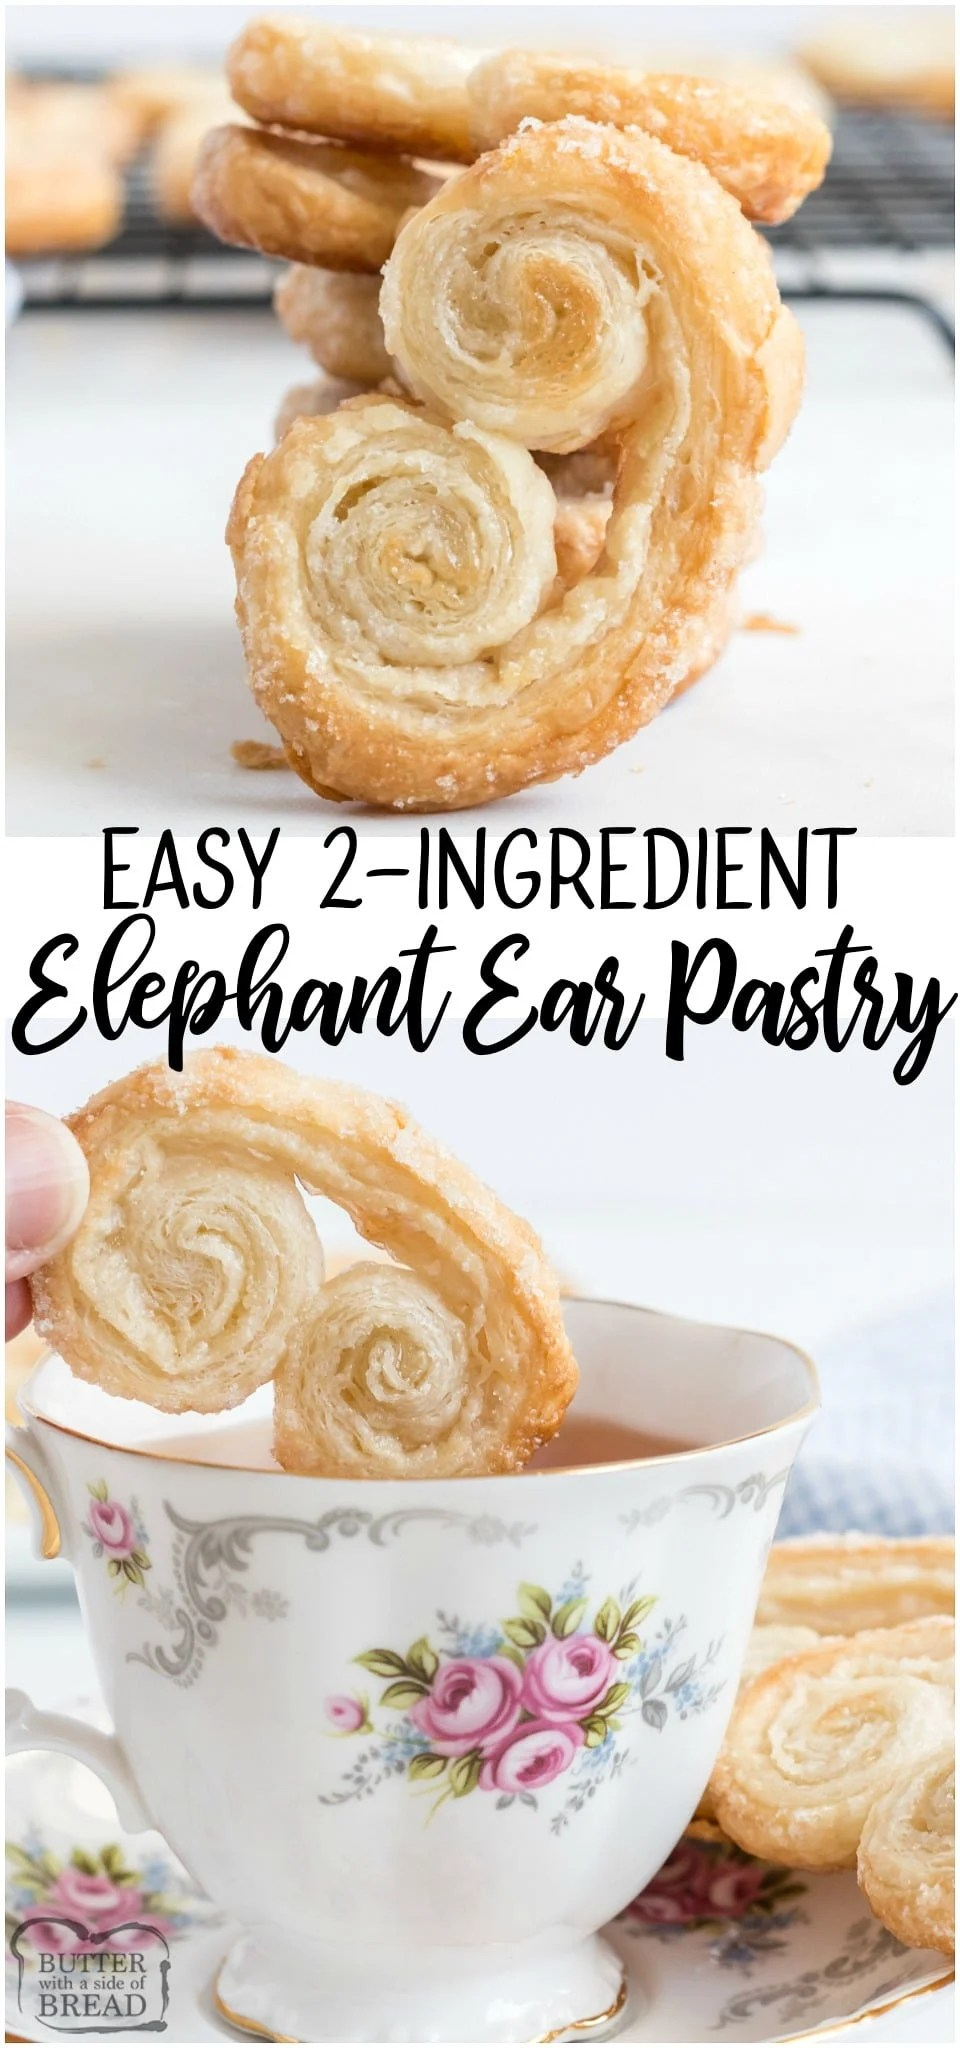 Elephant ears area delicious, buttery crisp sugar-covered french pastry that is also super simple to make! Just 2 INGREDIENTS and you can enjoy these Elephant Ear pastries at home! #pastry #French #elephantears #palmiers #cookies #easyrecipe from BUTTER WITH A SIDE OF BREAD